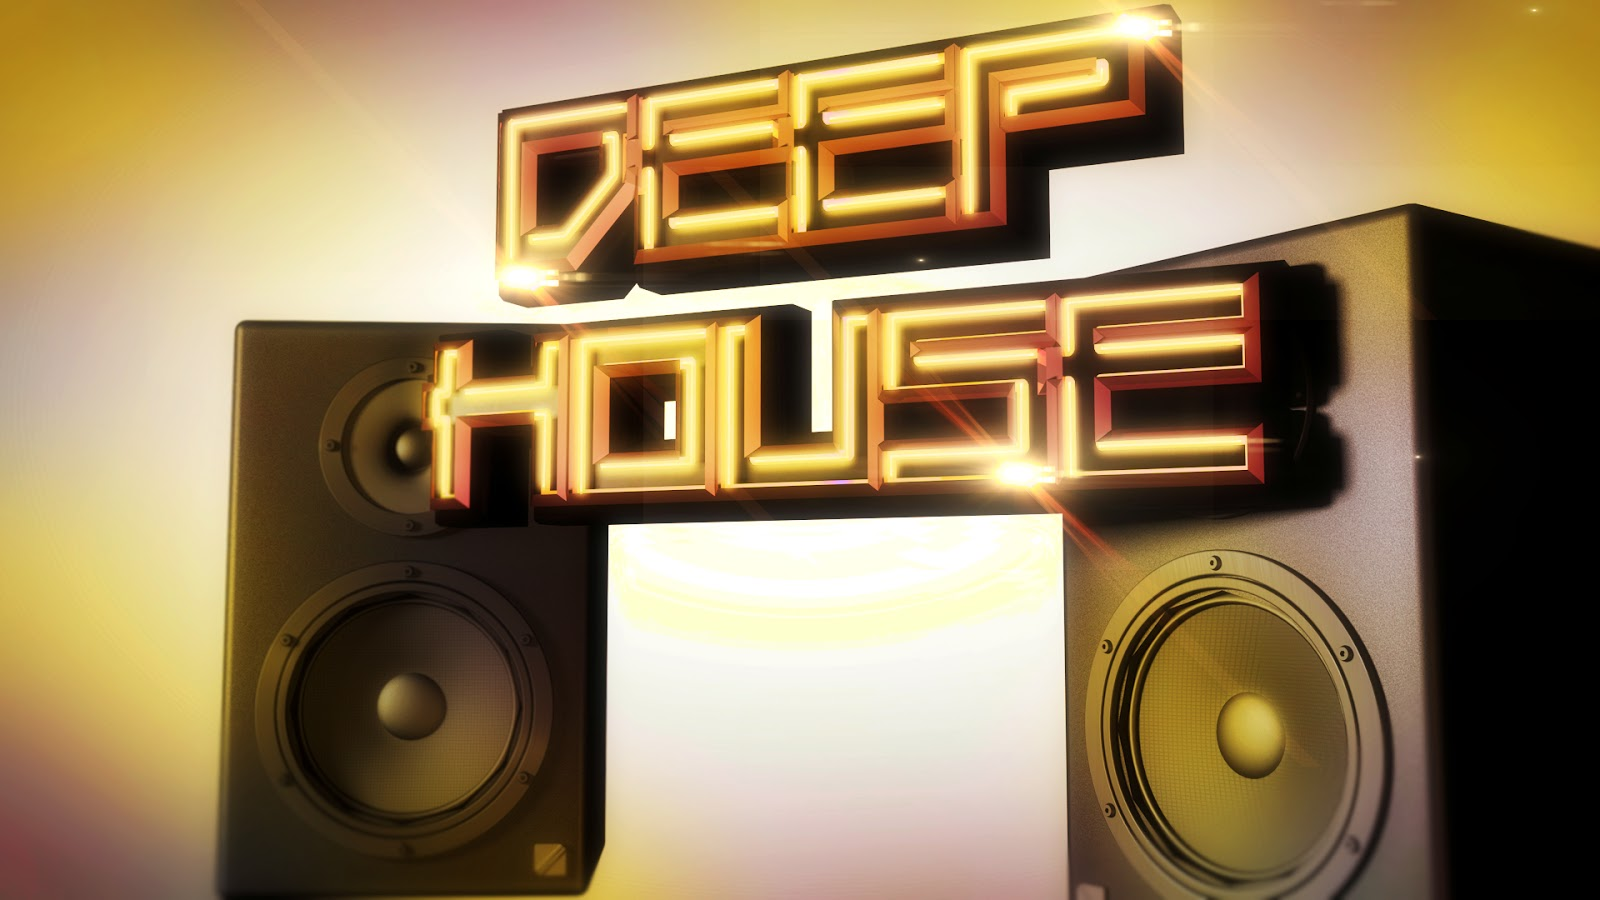 Deep house wallpaper hd 1920x1080 for What s deep house music